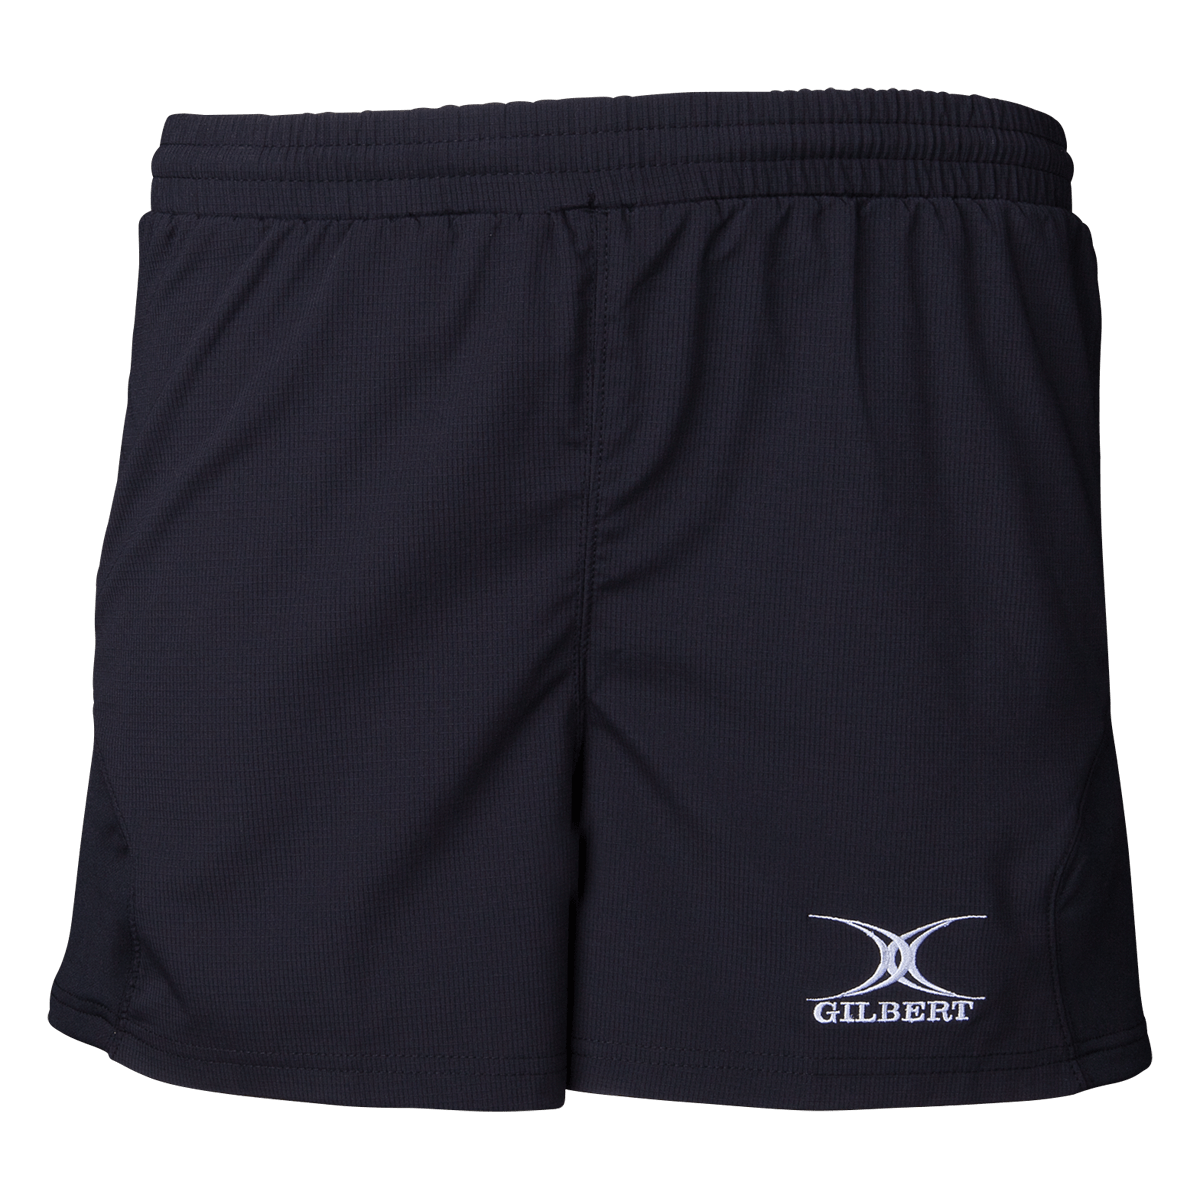 Gilbert Virtuo Rugby Match Short Black